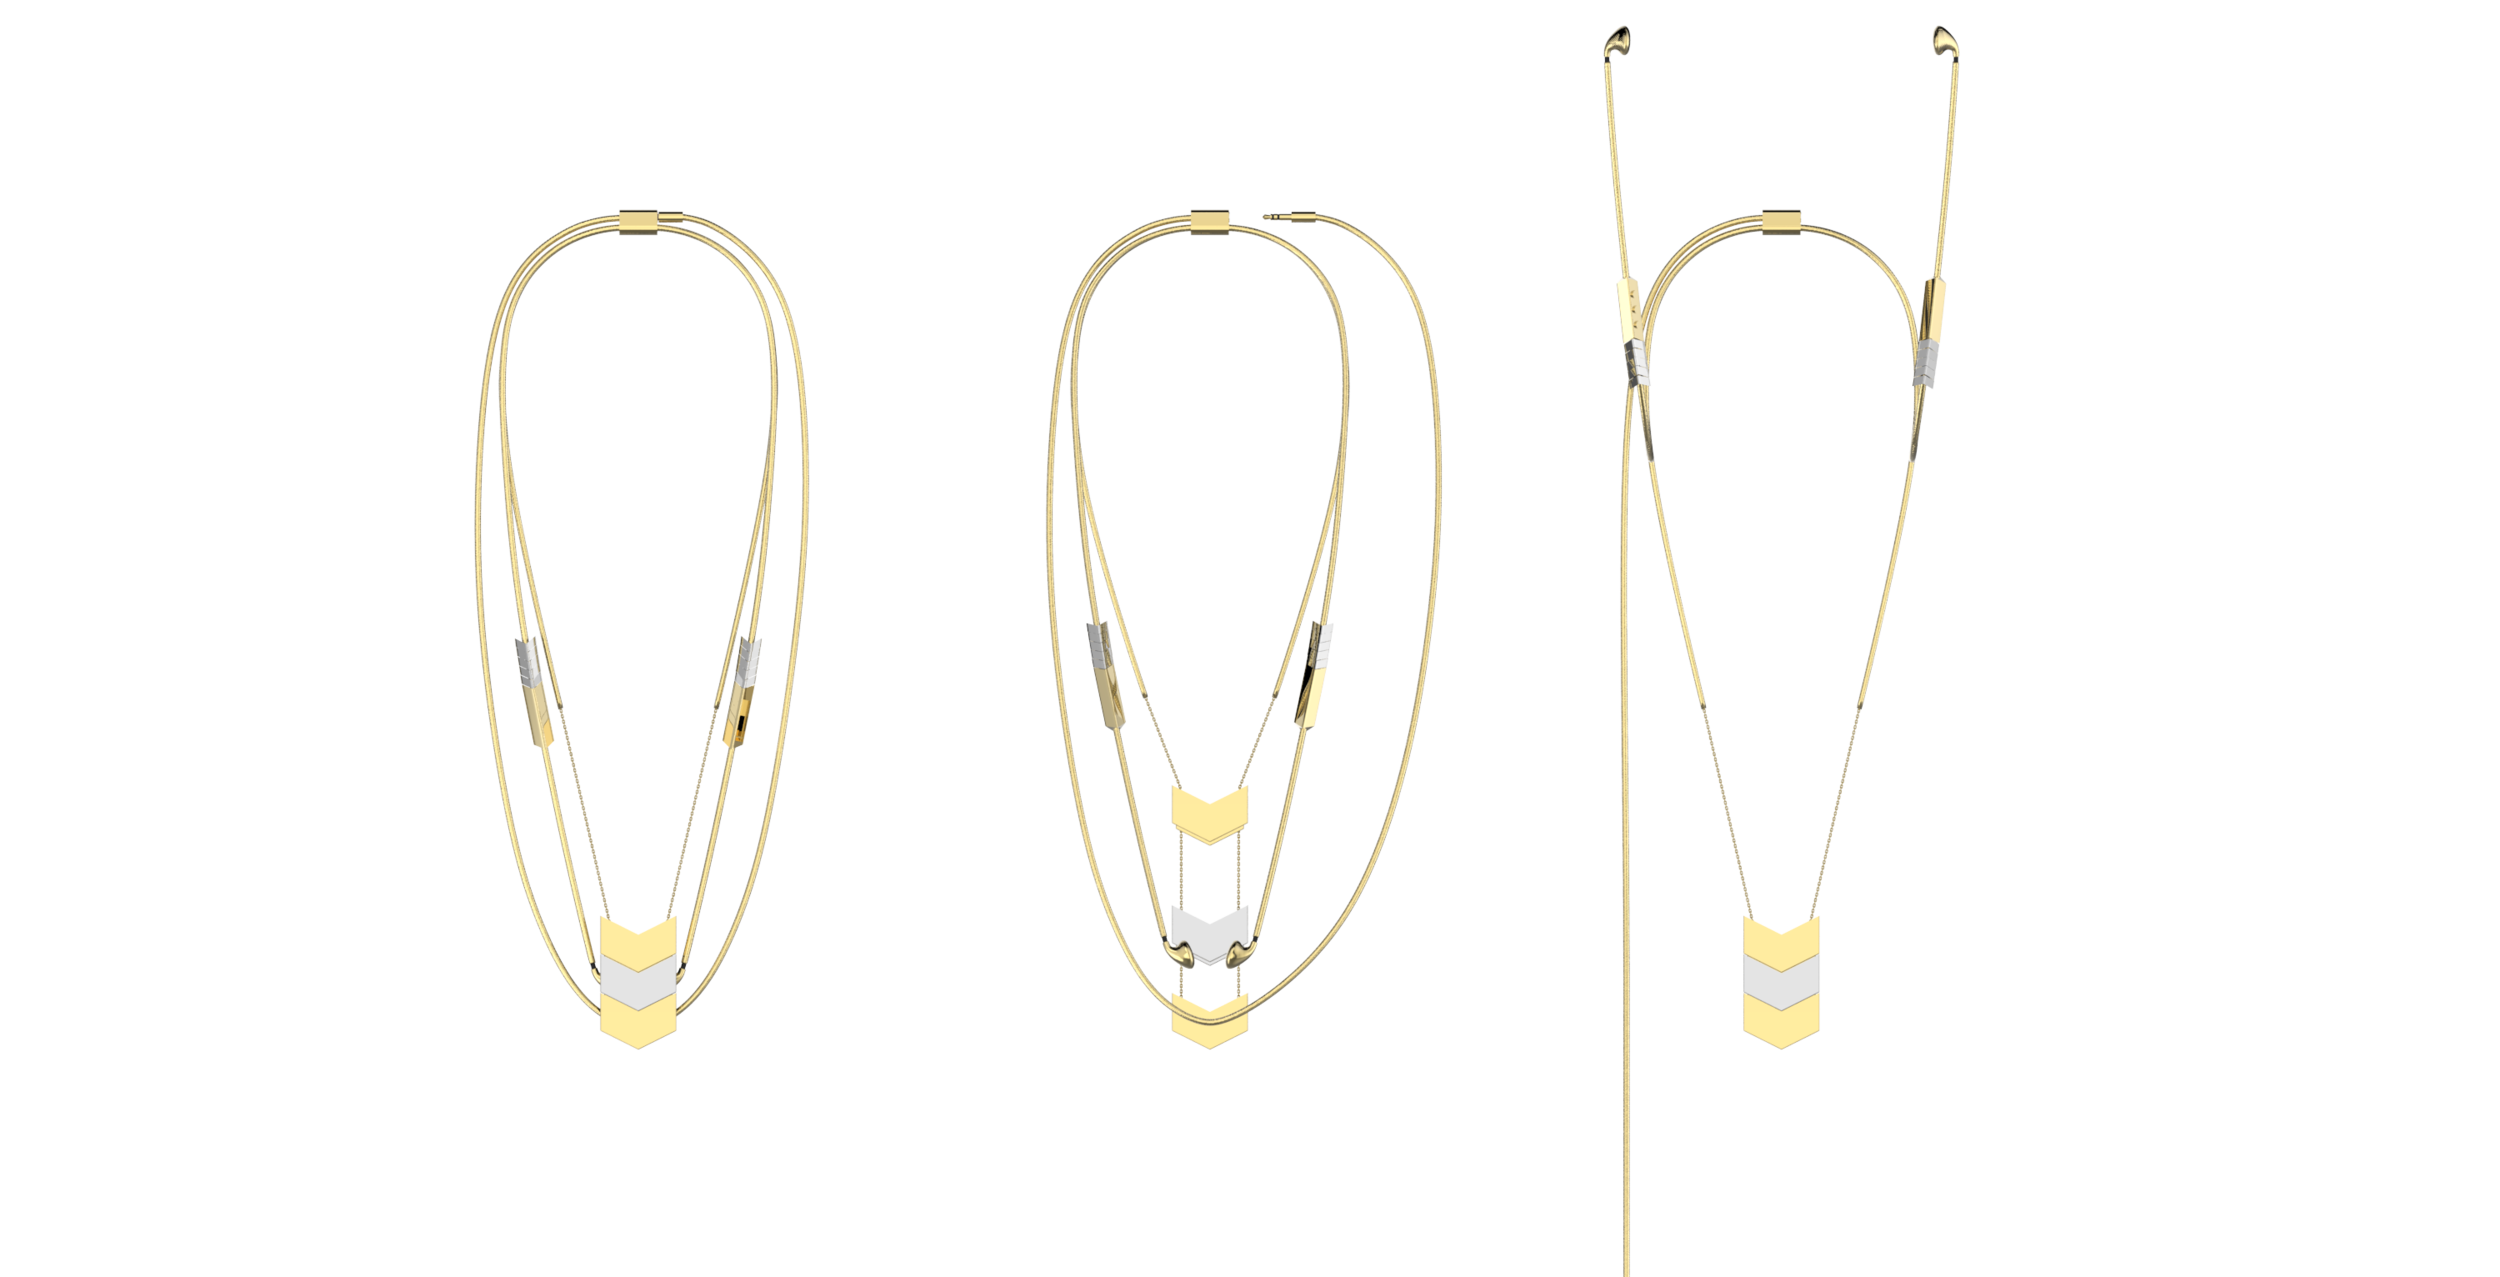 Tinsel_Earbud Necklace Line 02_19.168.png